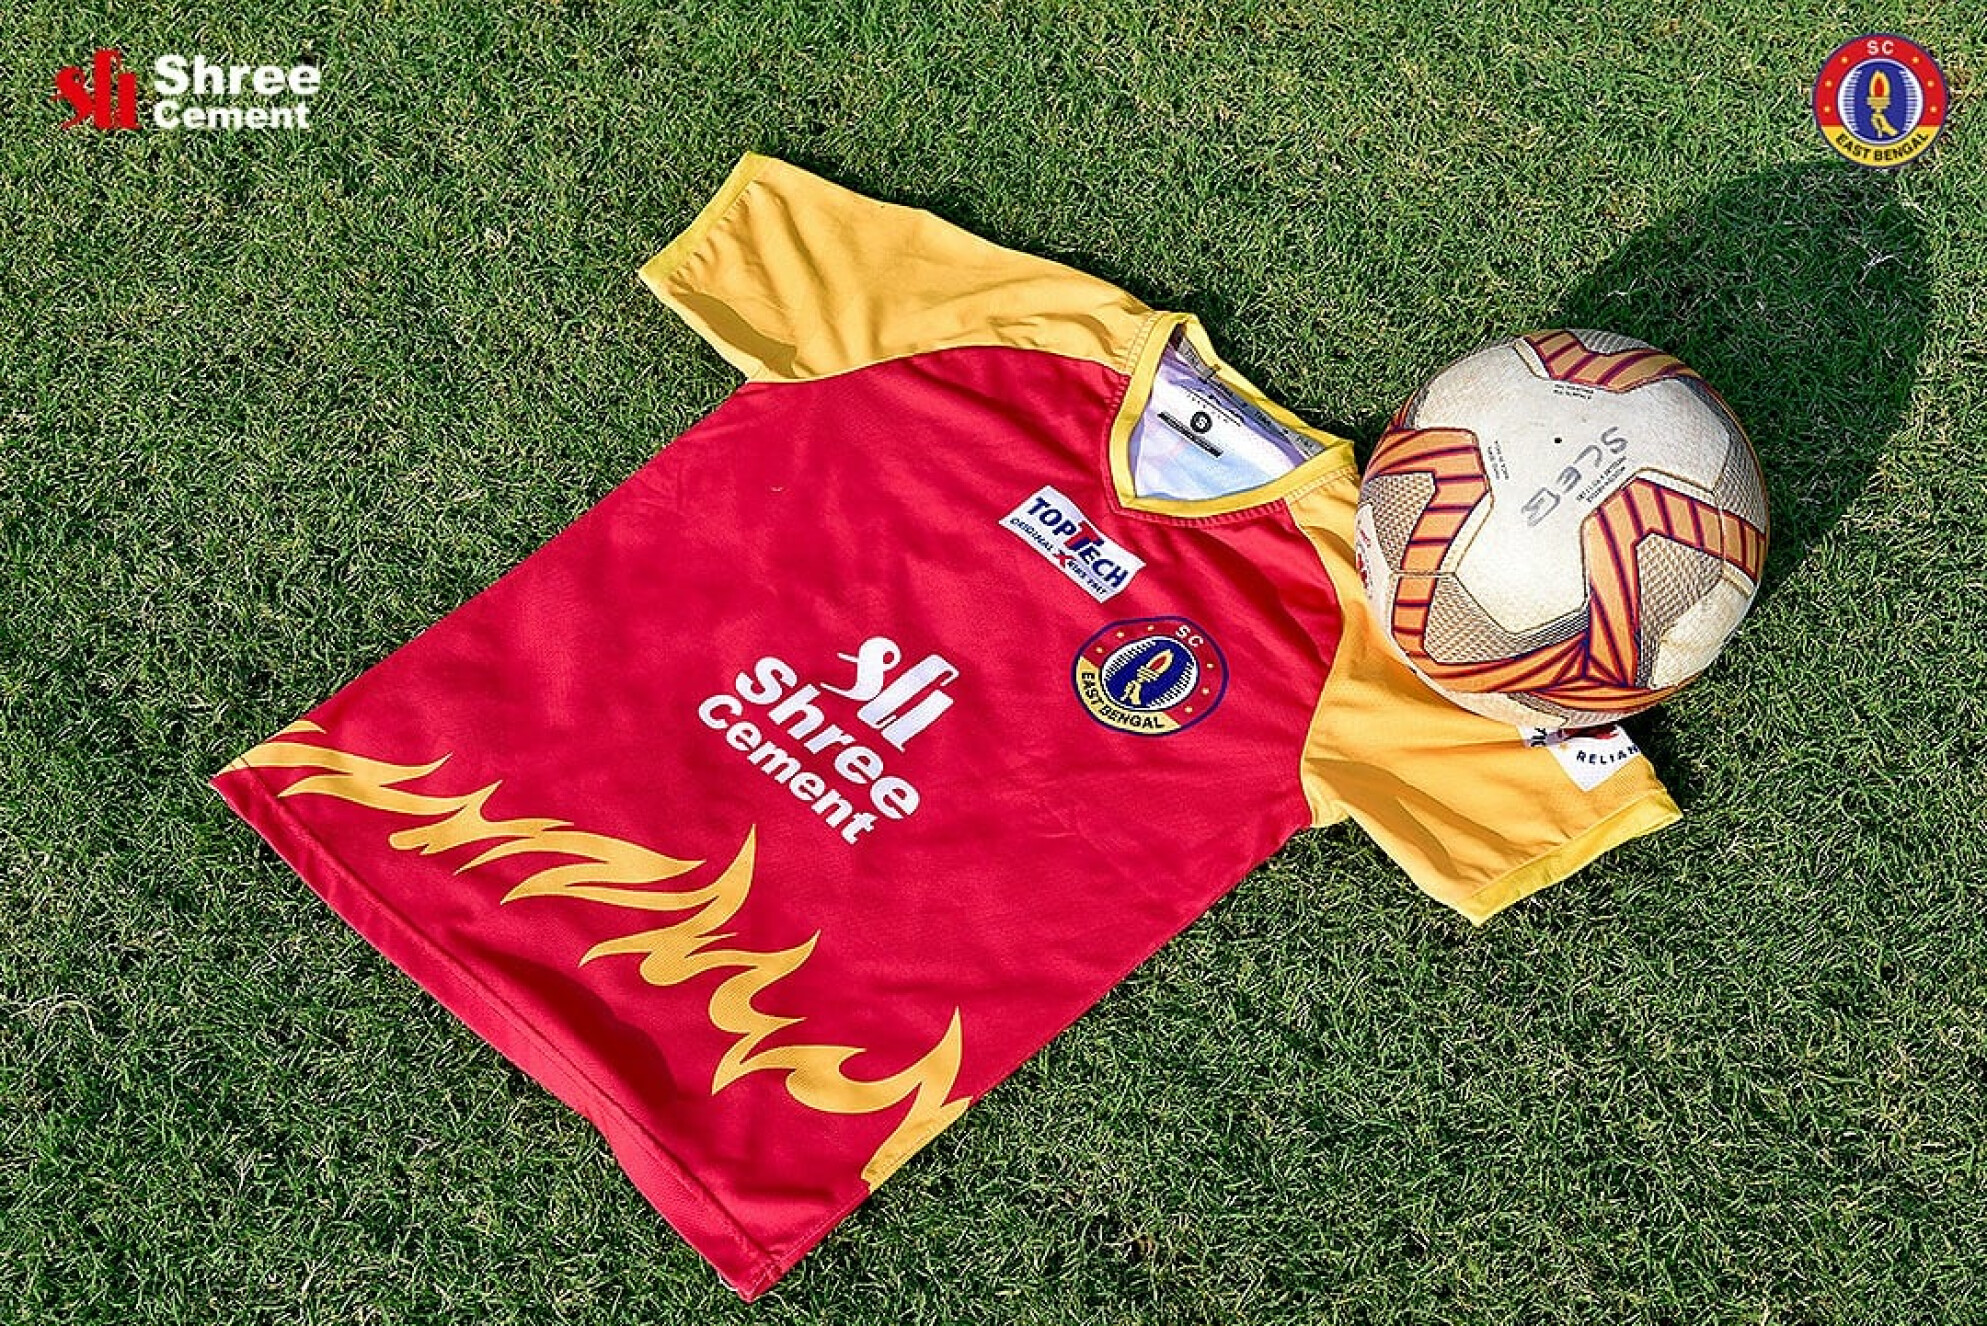 Major roadblock hits East Bengal's ISL journey as difference between club and investor grows